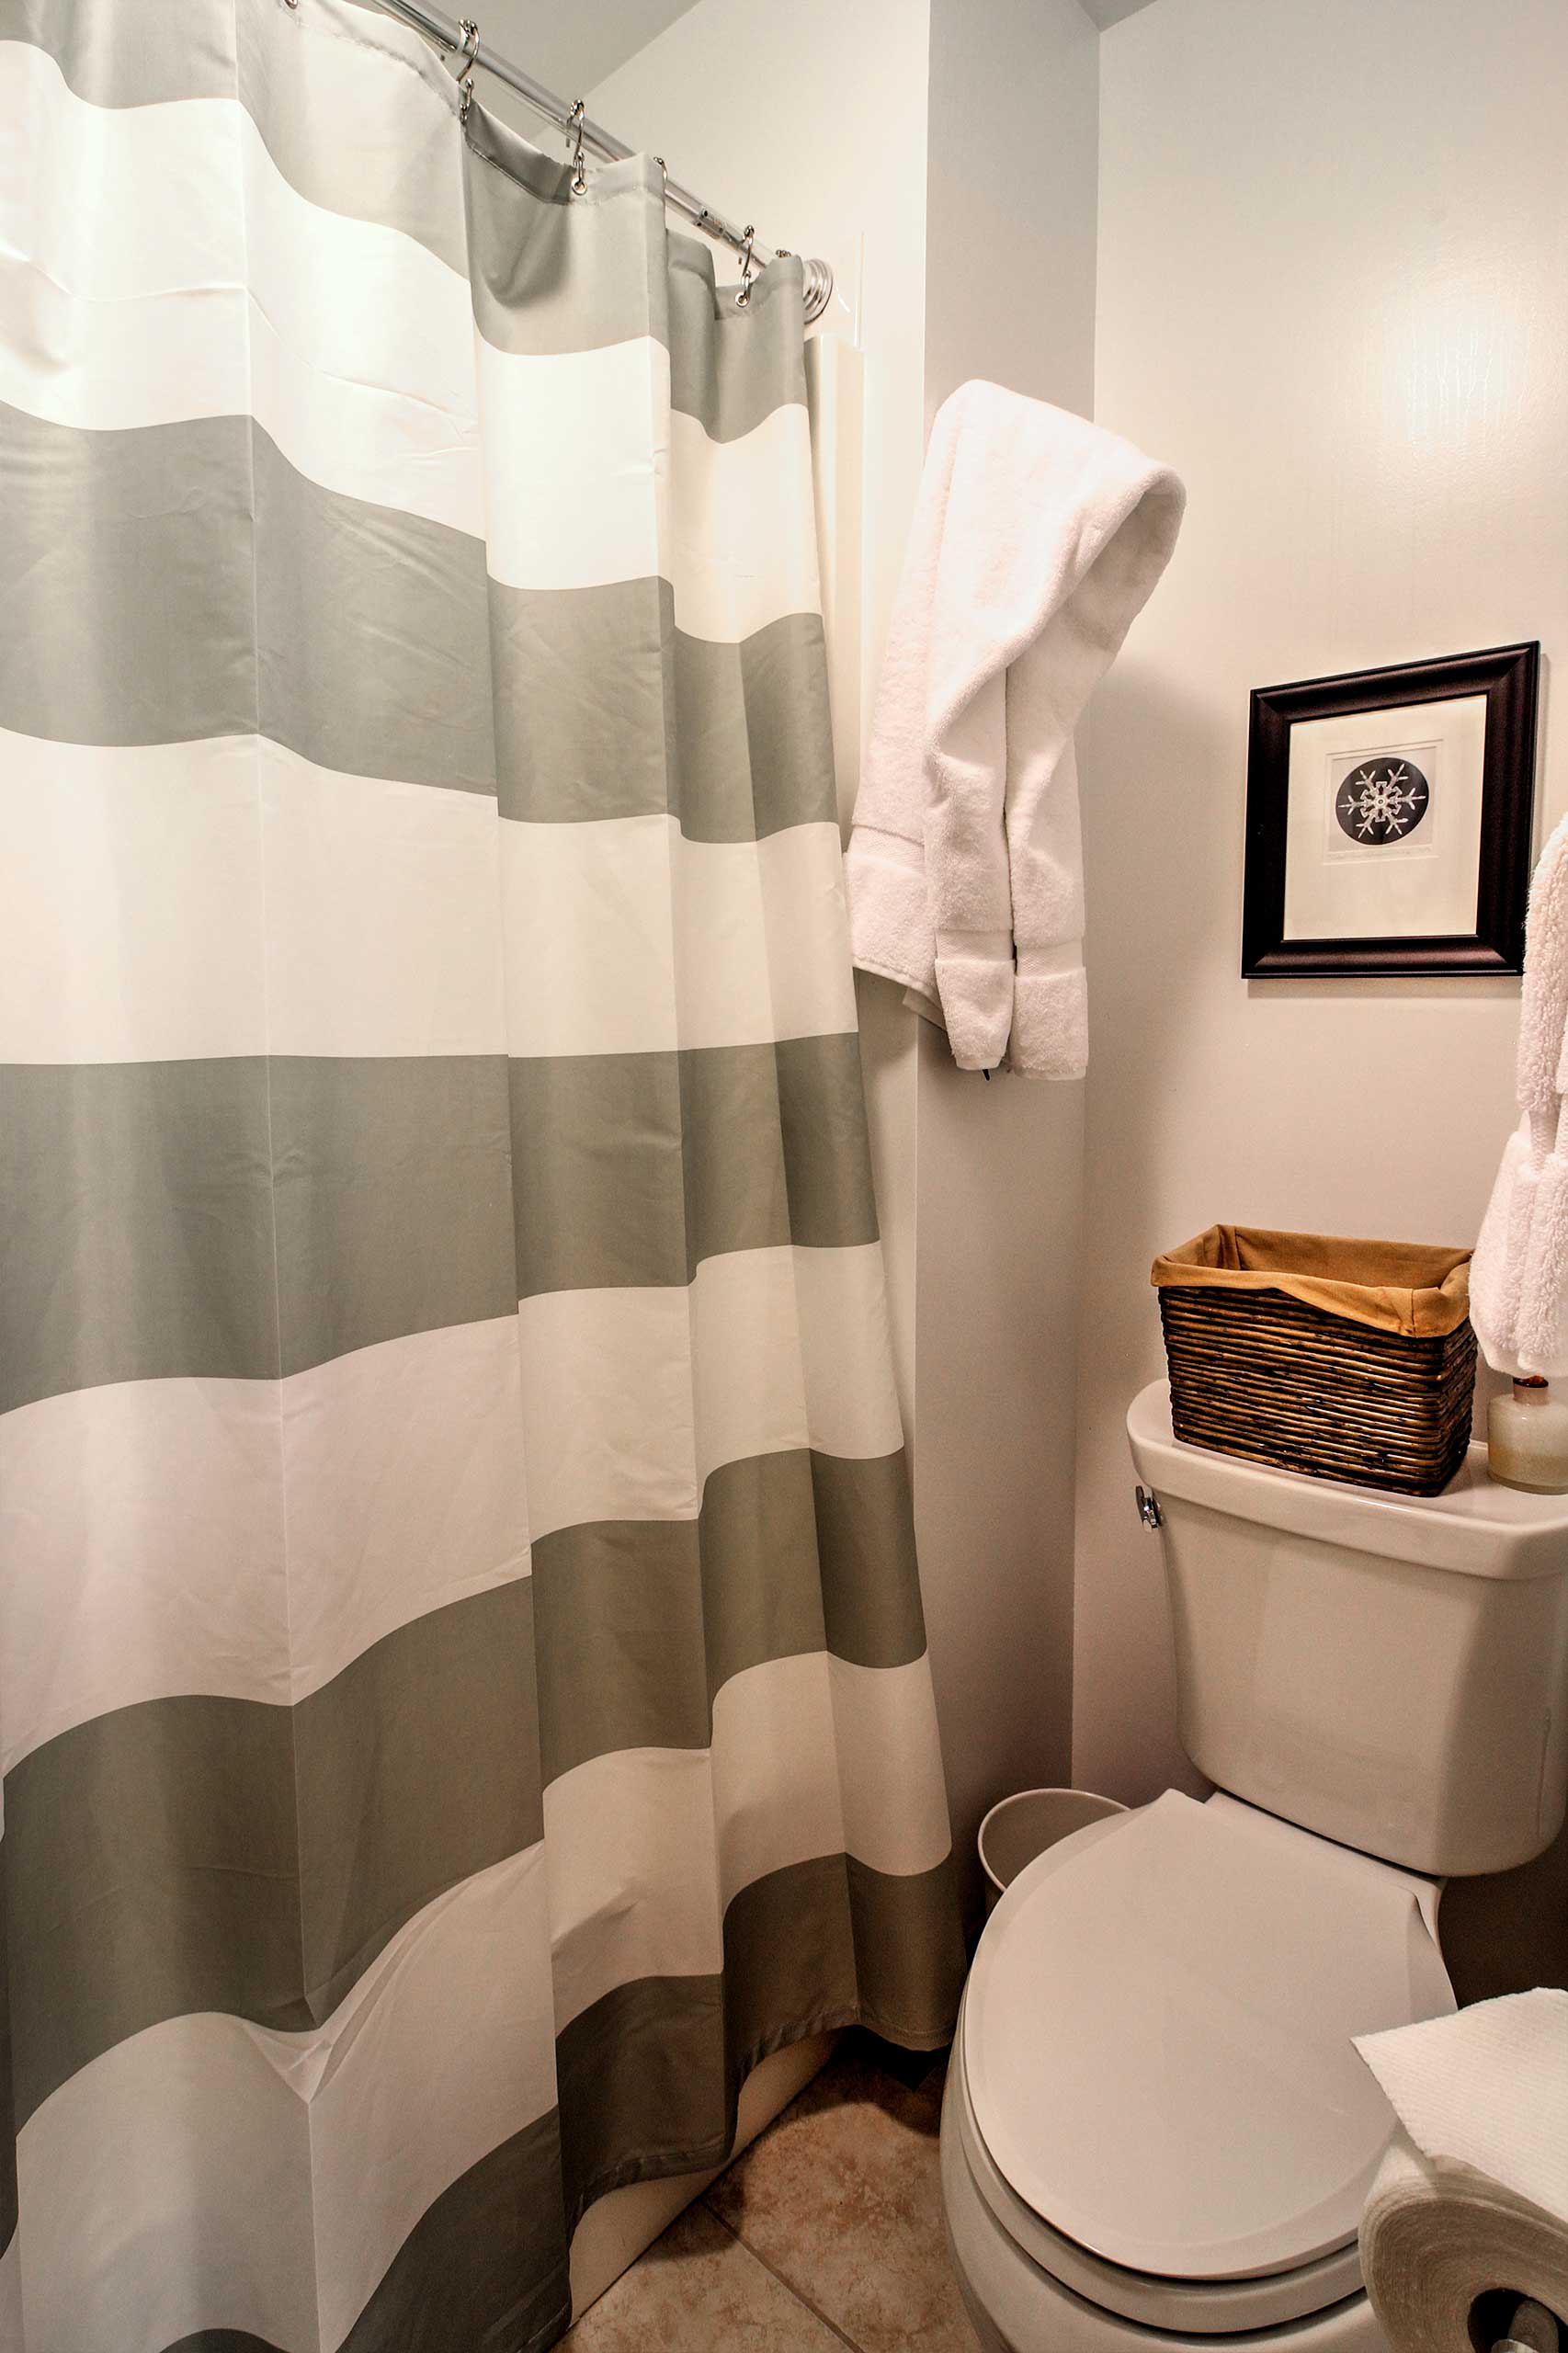 Get ready for the day in the en-suite bathroom!